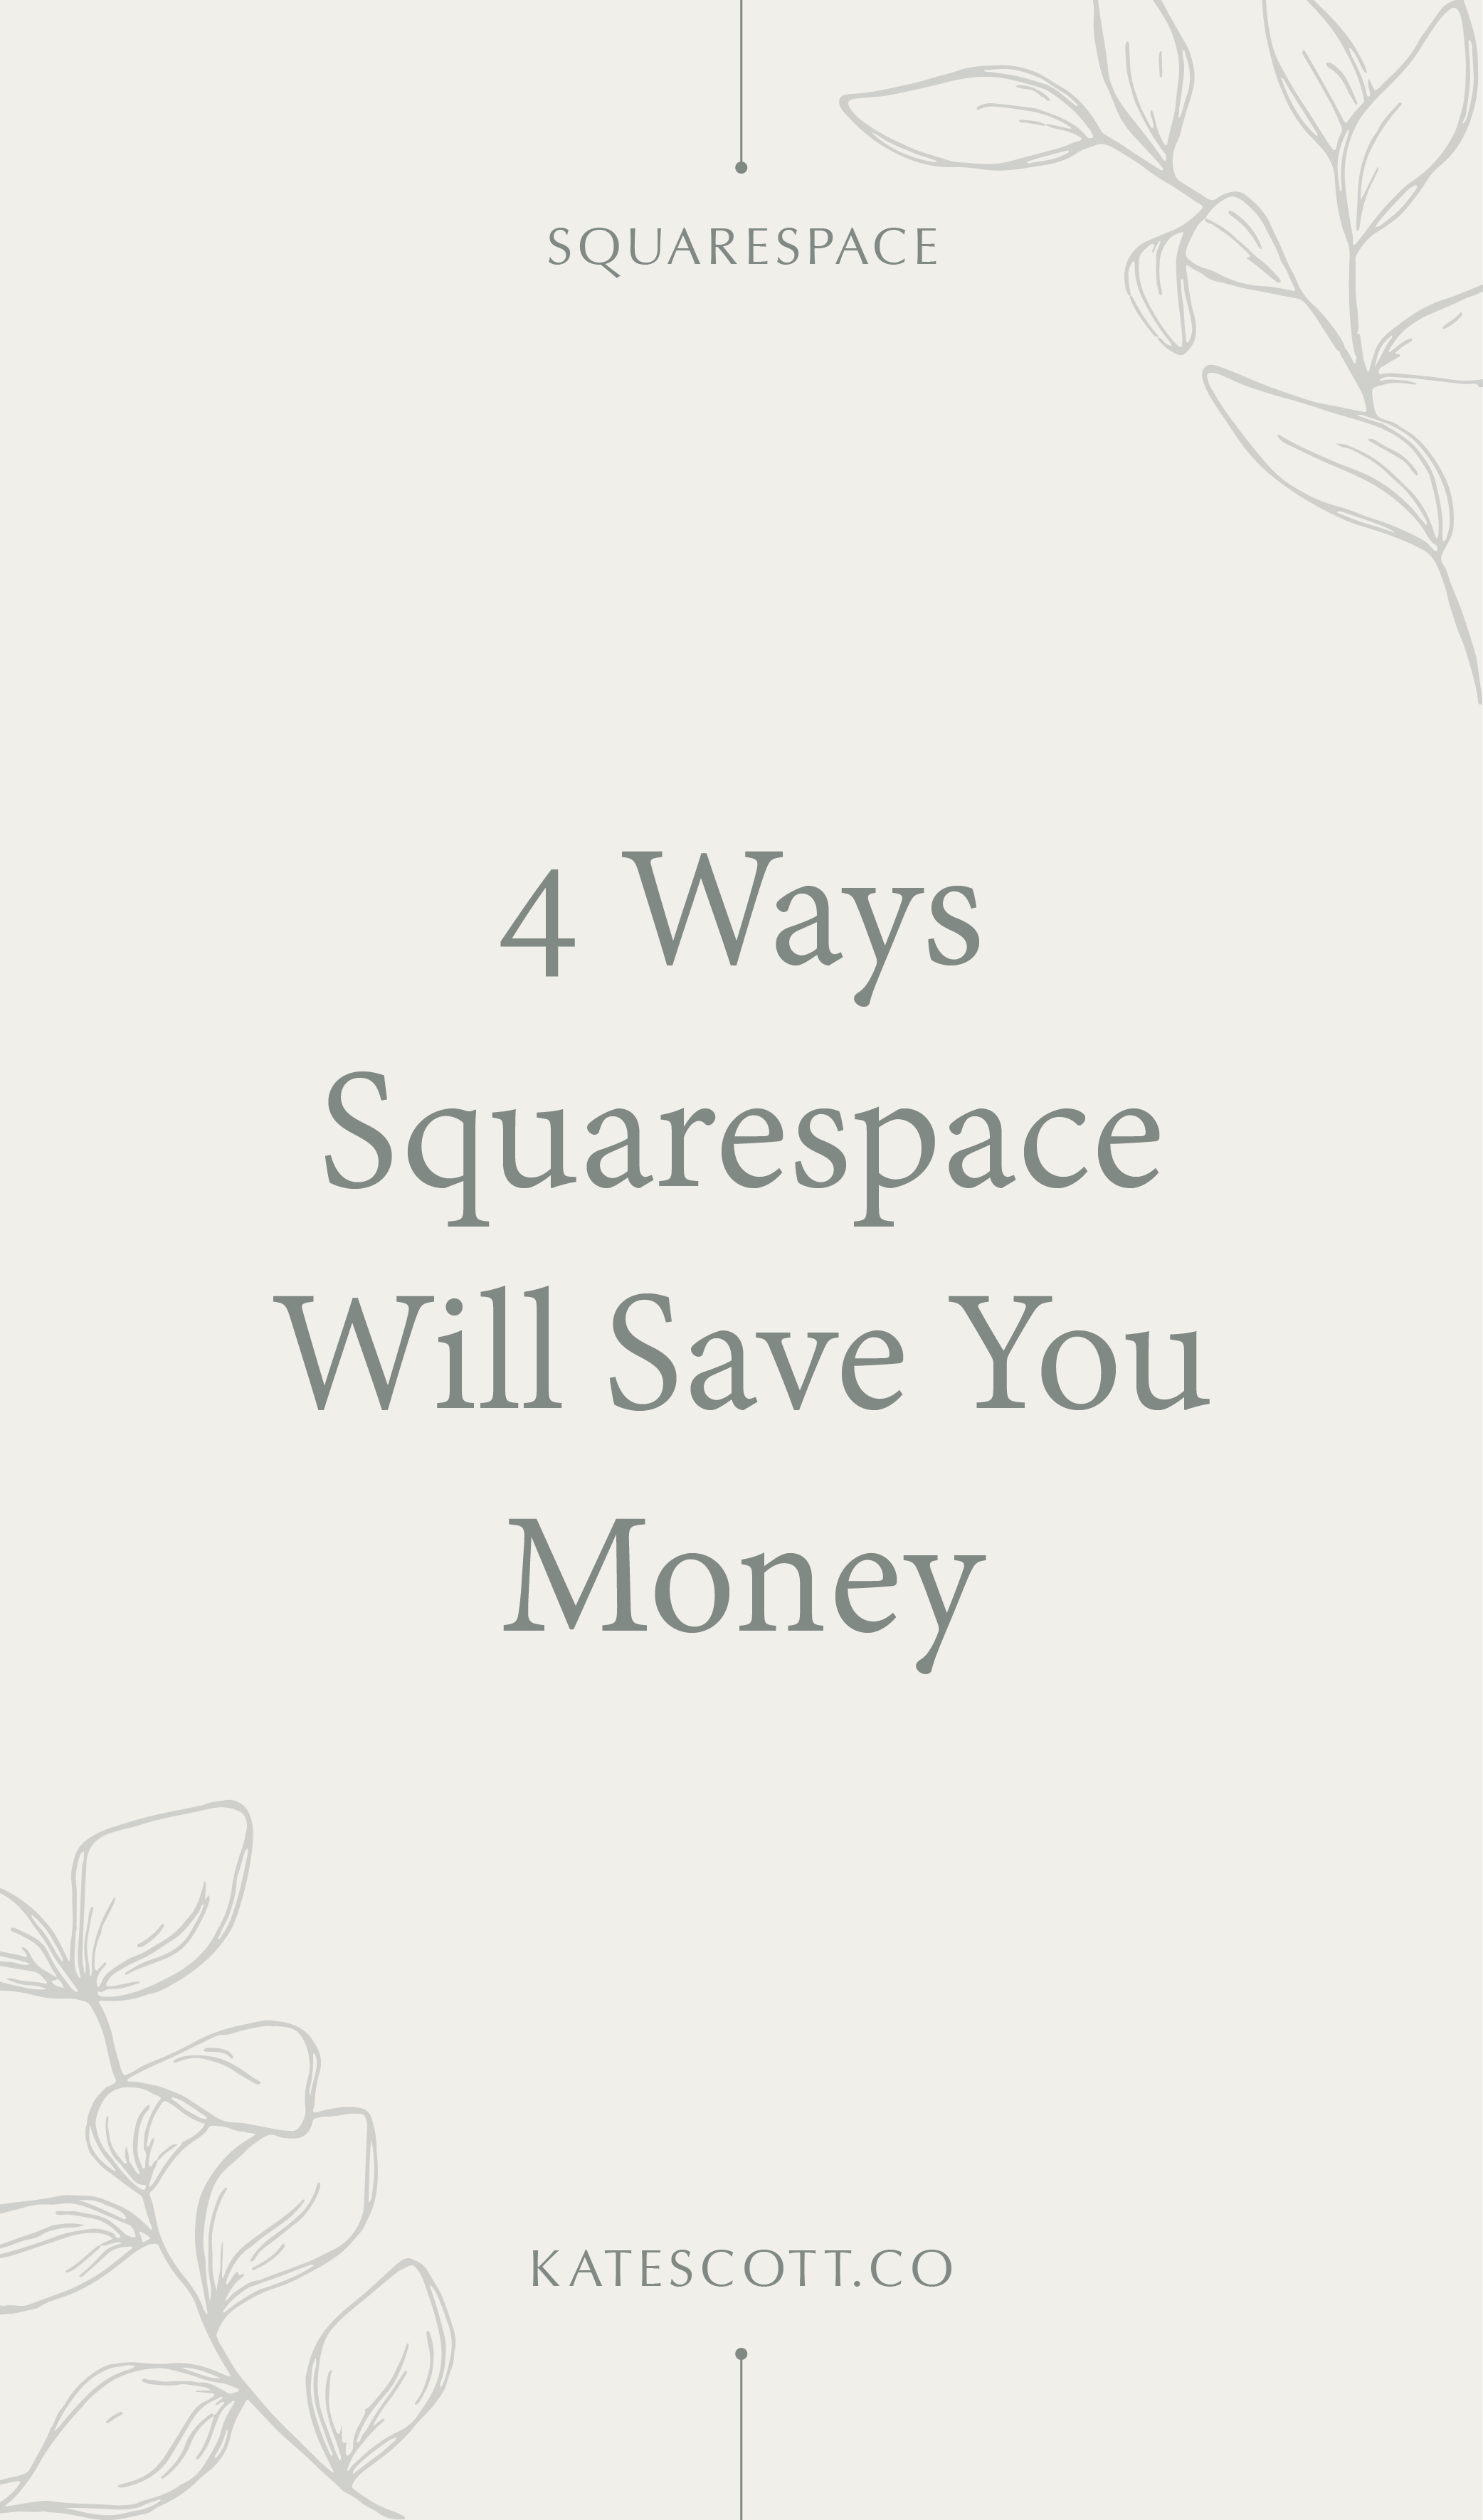 Wondering if you should go with Wordpress or Squarespace? Here are 5 ways Squarespace will save you money. | Squarespace for Beginners | Squarespace for Business | Squarespace for Blogging | Wordpress vs Squarespace | #entrepreneur #squarespace